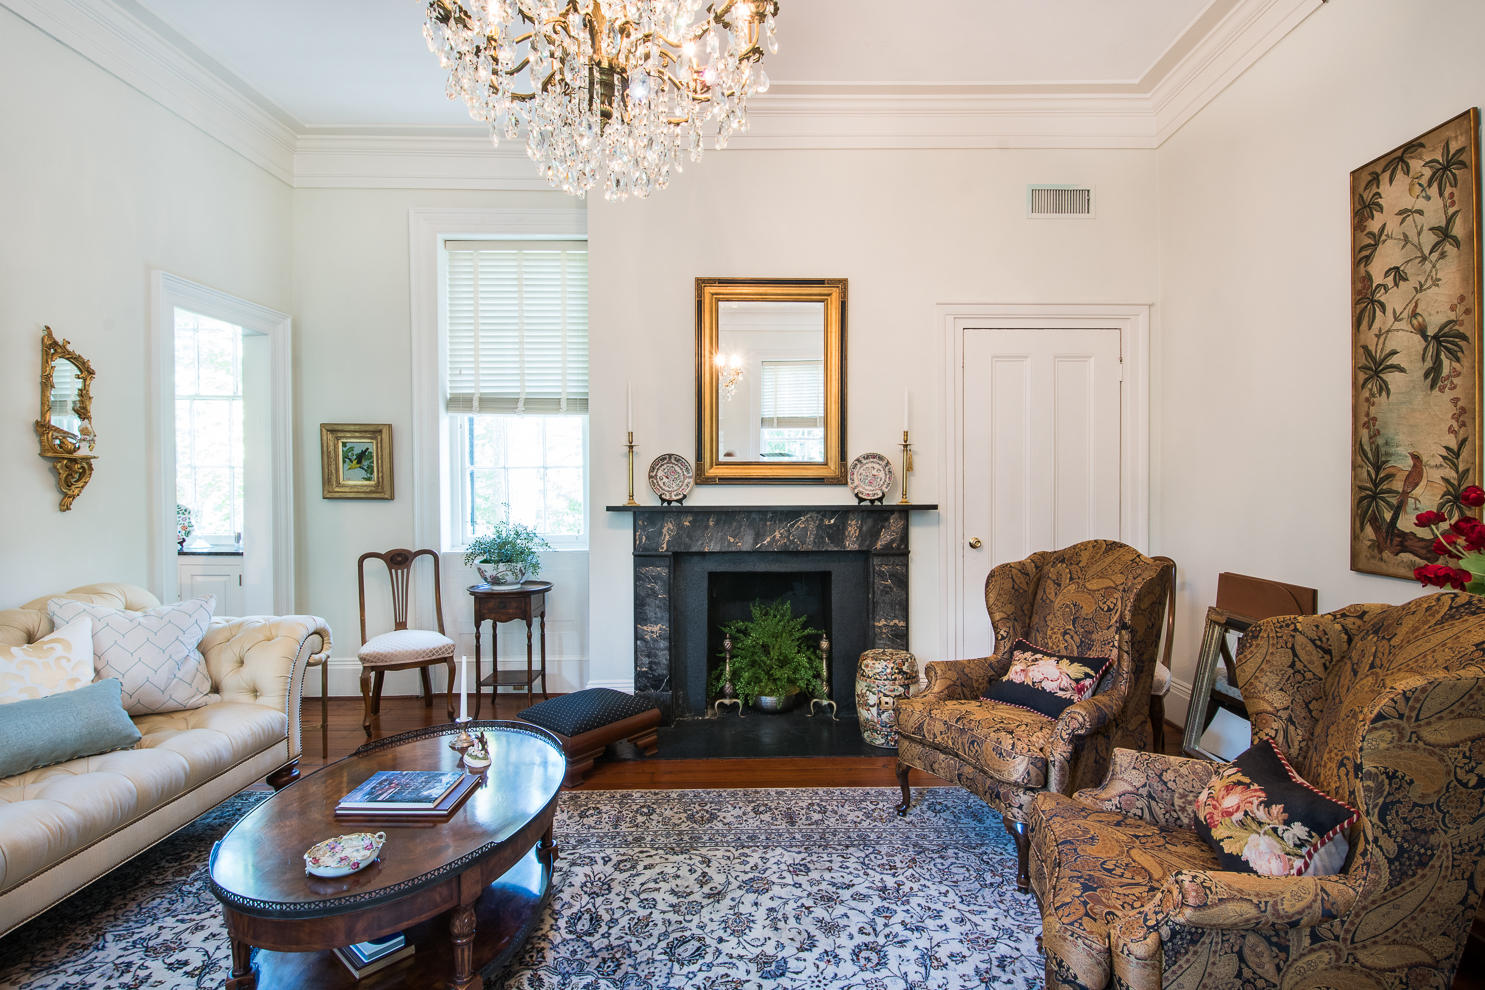 South of Broad Homes For Sale - 1 Prices, Charleston, SC - 12